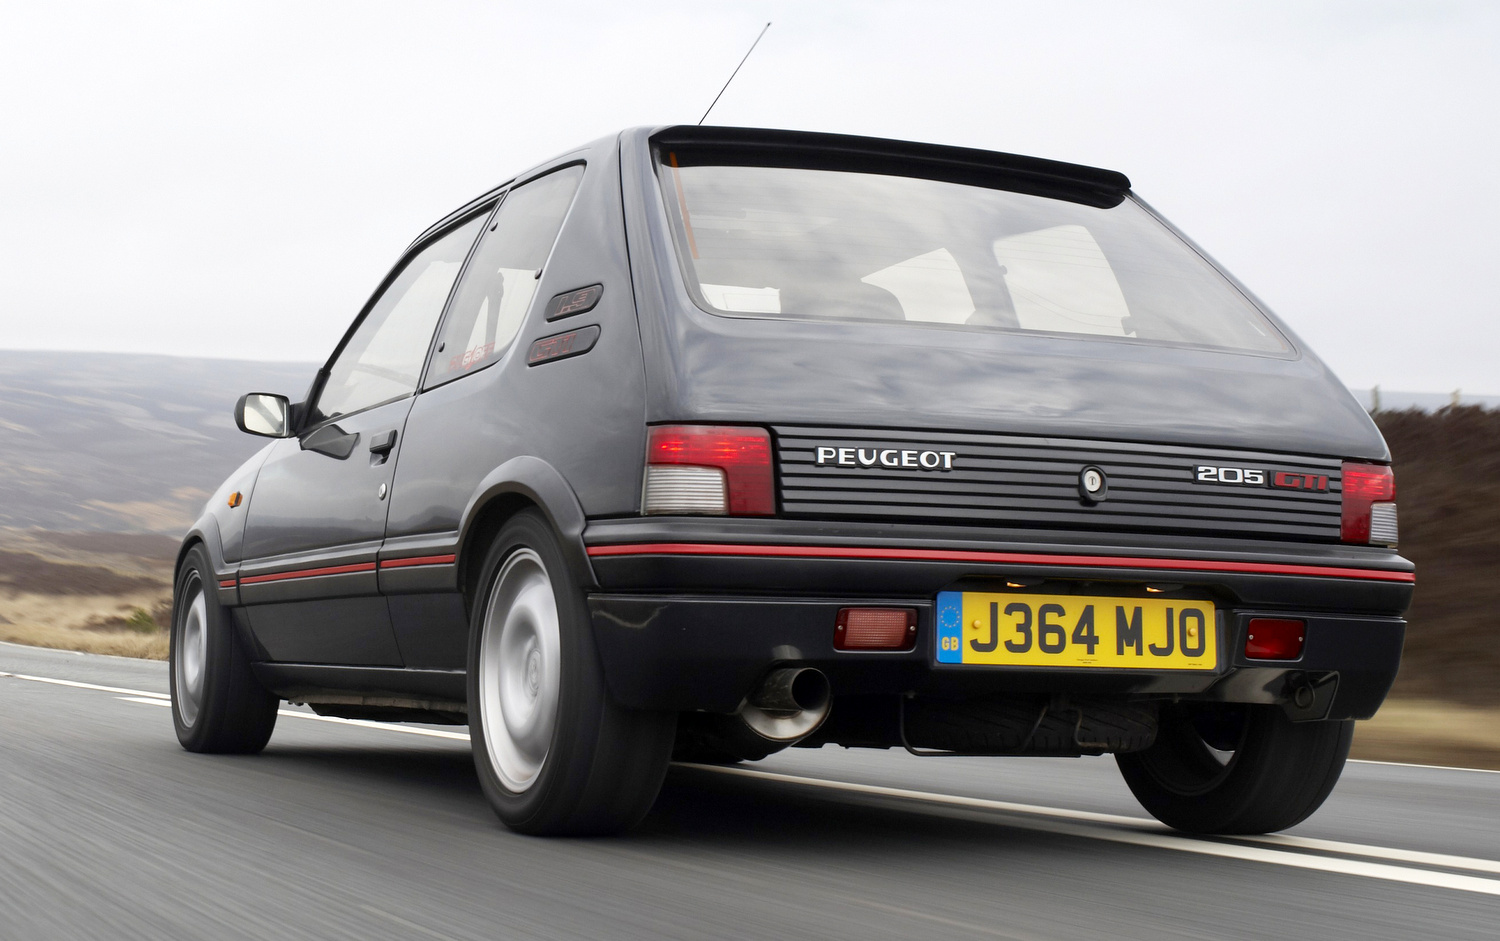 the peugeot 205 1 9 gti tcr legends thecarsreport car news car reviews and car culture. Black Bedroom Furniture Sets. Home Design Ideas